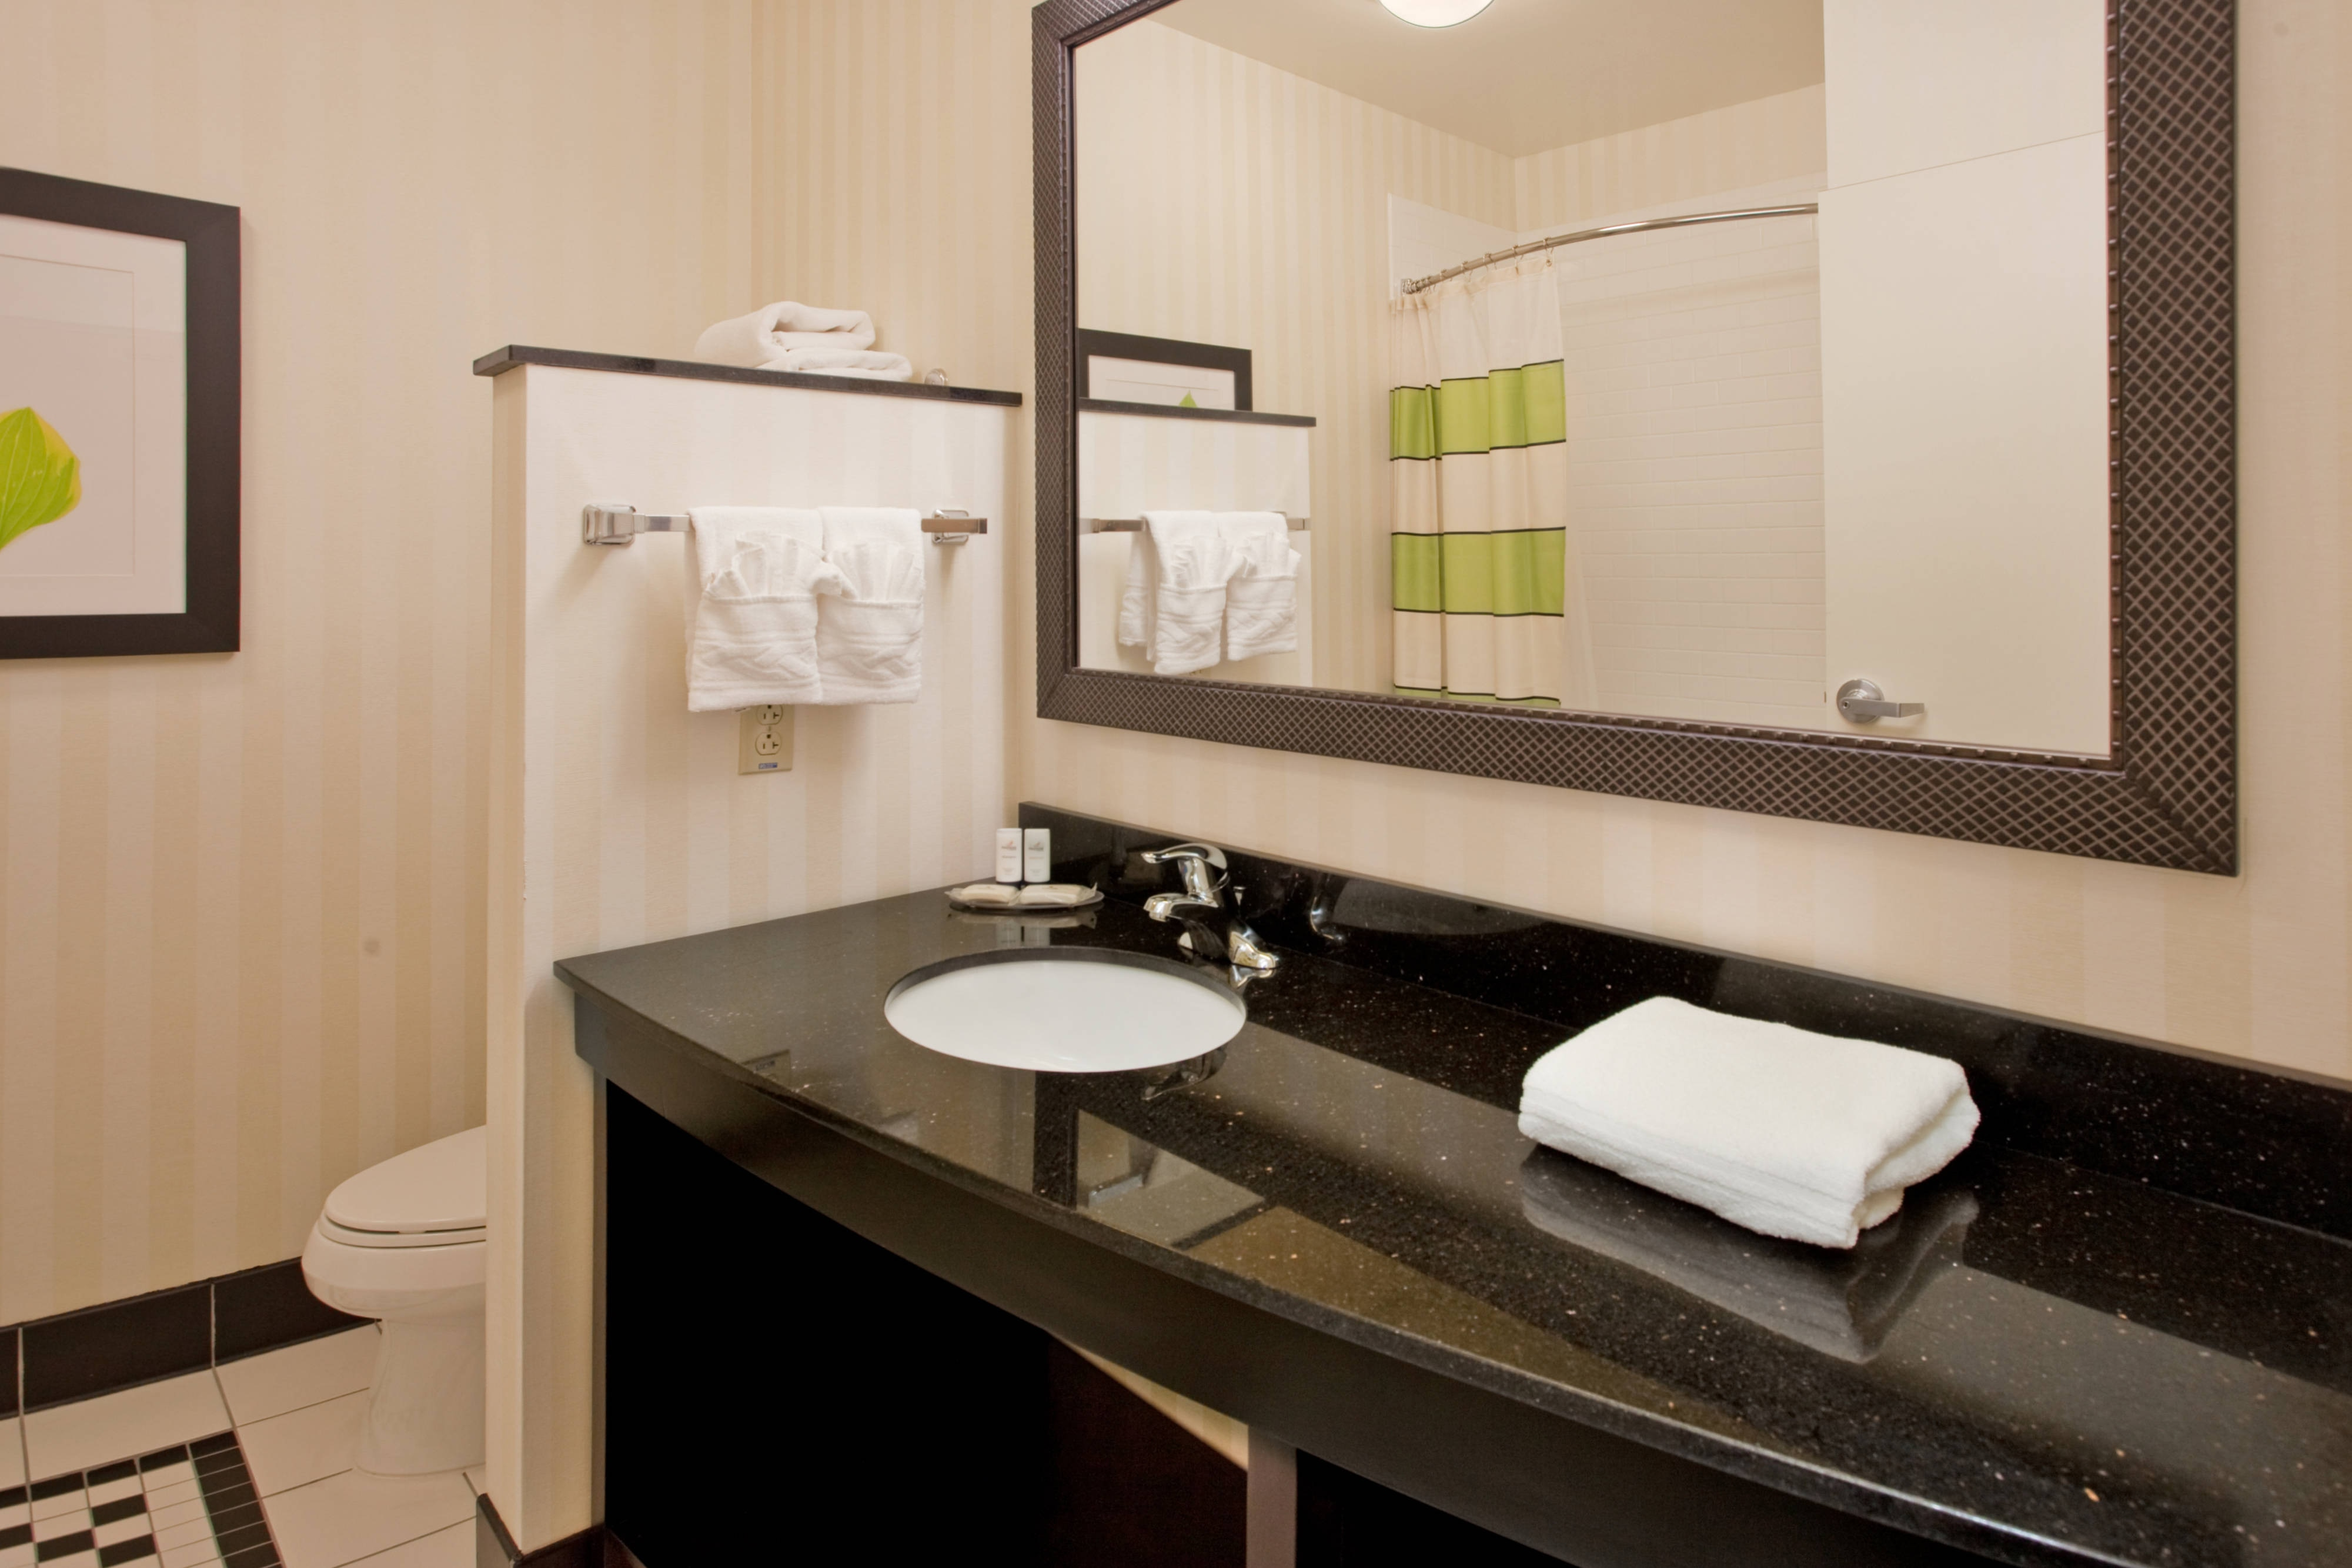 Fairfield Inn & Suites Kearney Guest Bathroom